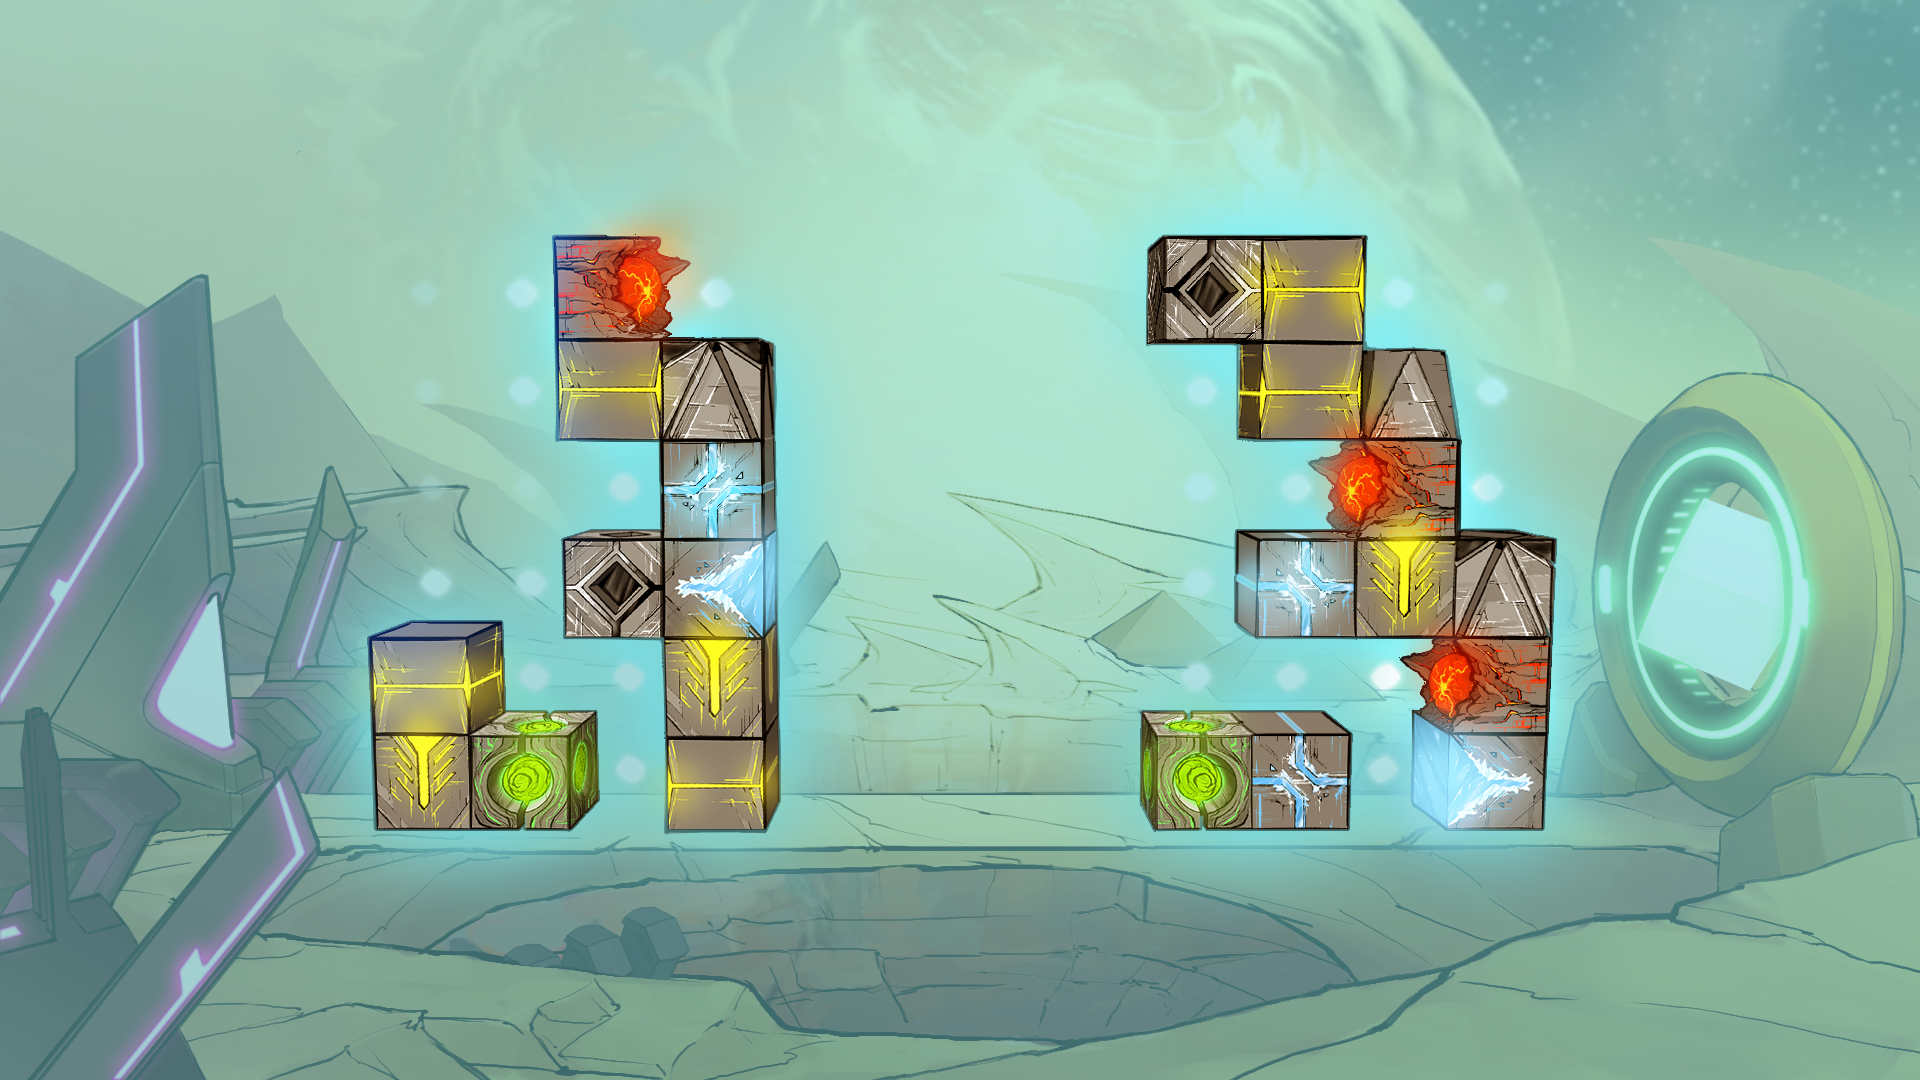 Image of the Game Design Document submitted to the Universal Game Dev Challenge in 2018: Competing players build single Olkari Cubes with various attack and defense capabilities and stack them to towers in the middle.